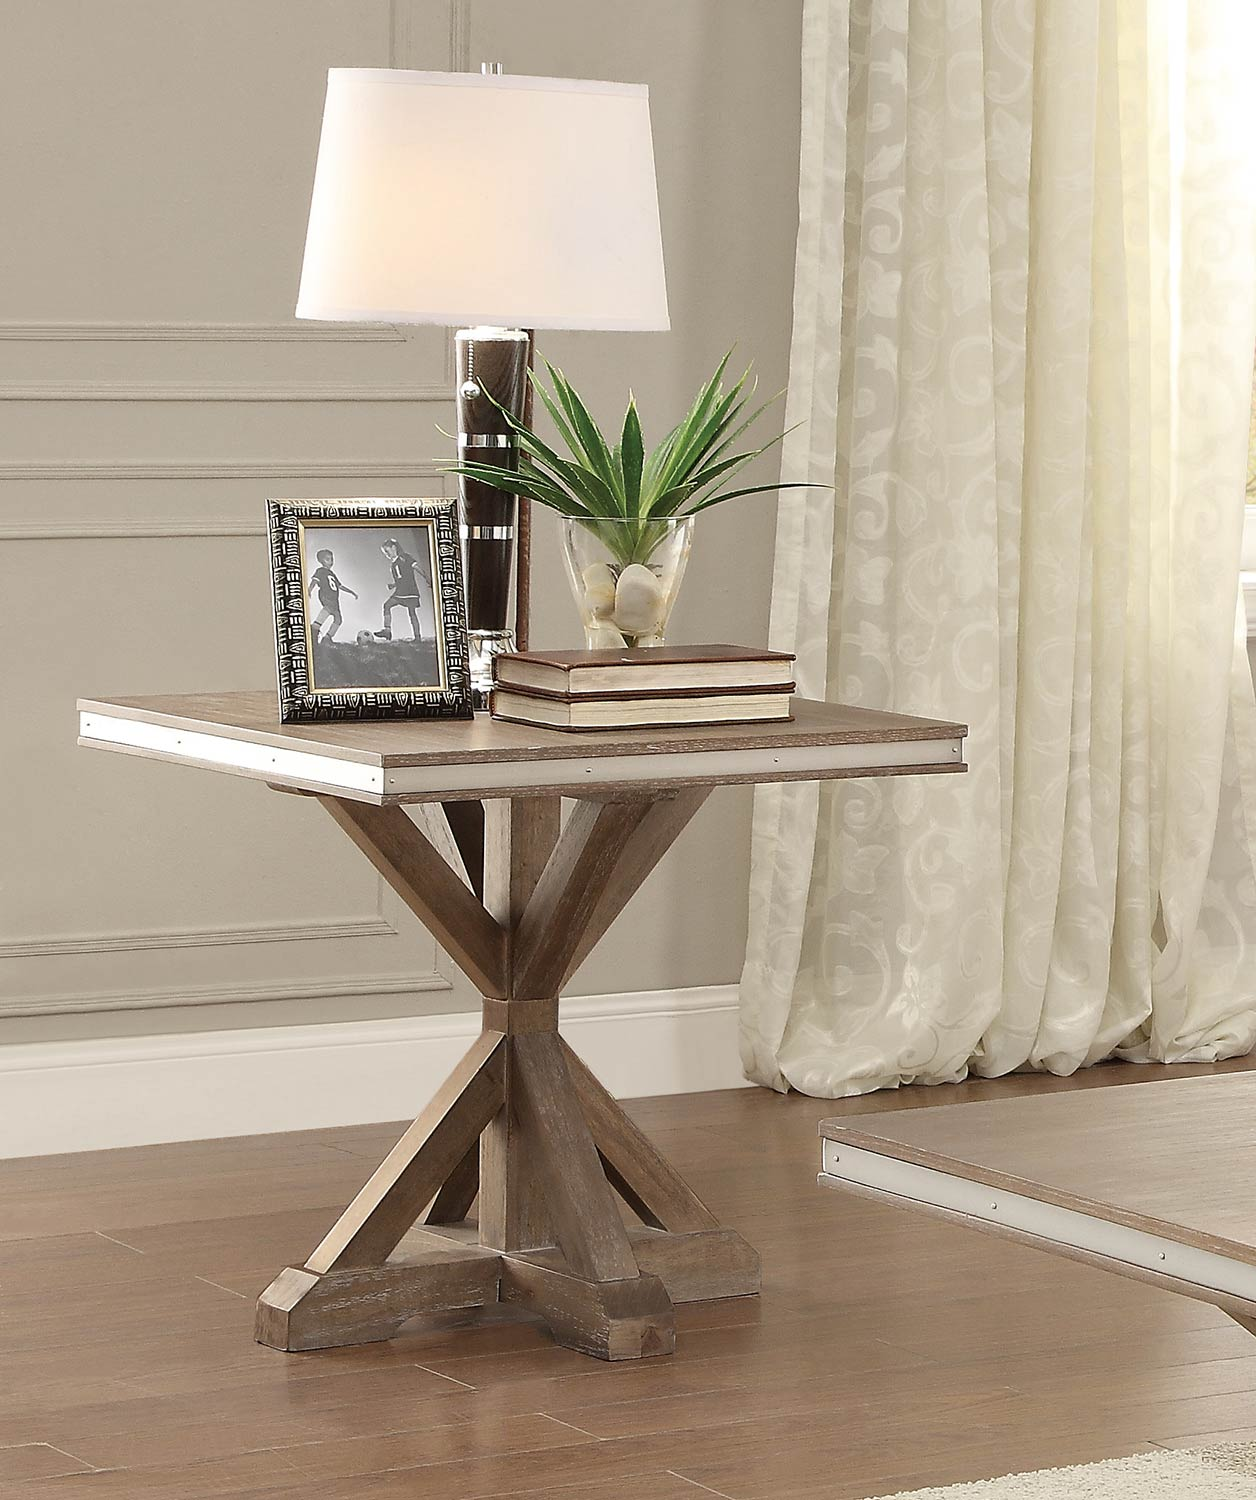 Homelegance Beaugrand End Table - Light Brown with Stainless Steel Apron Banding